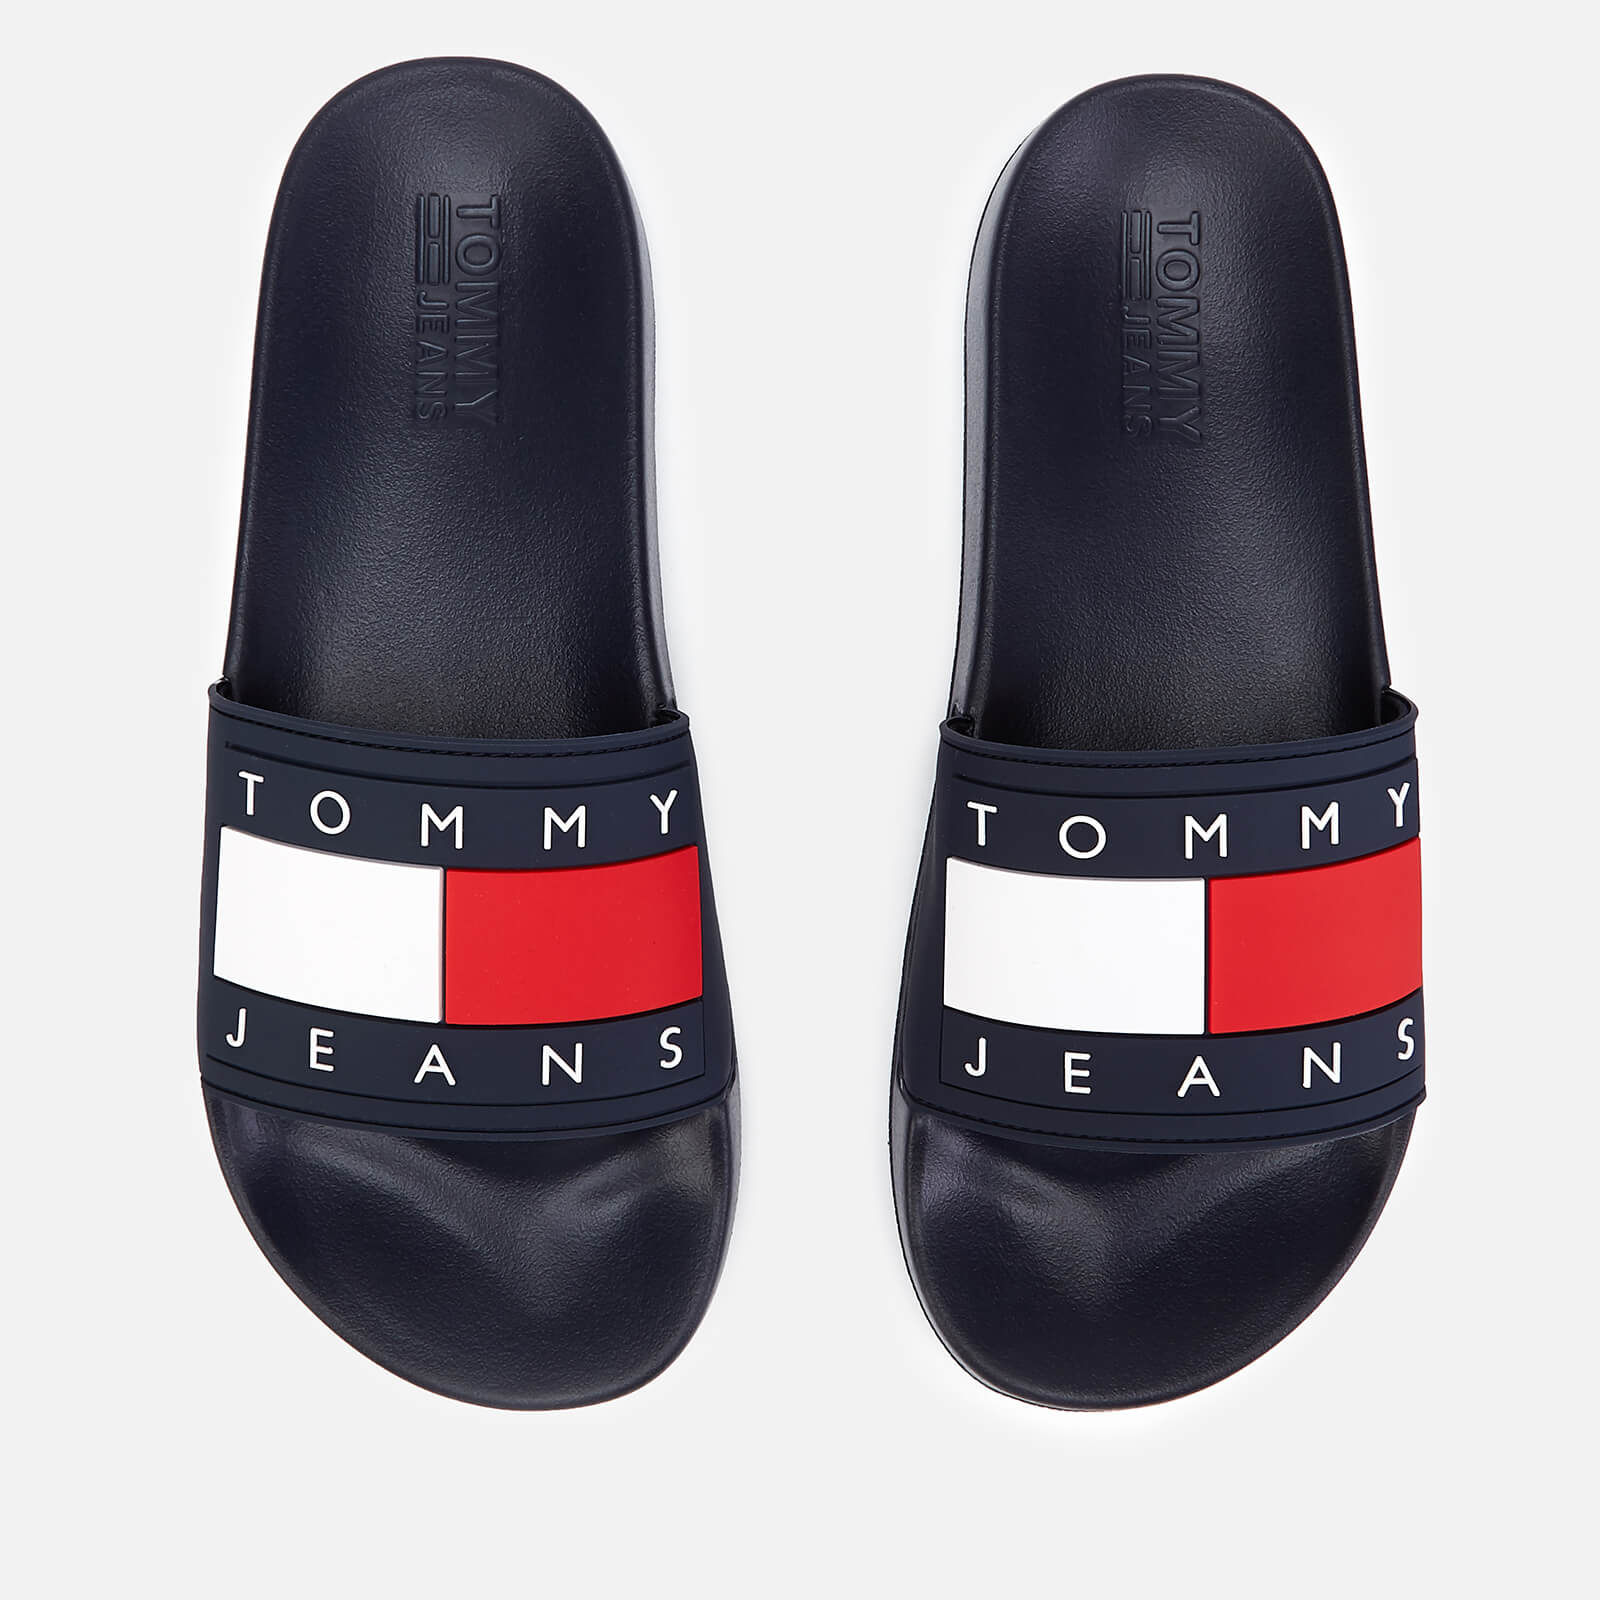 78317c3c Tommy Jeans Men's Flag Pool Slide Sandals - Midnight | FREE UK Delivery |  Allsole